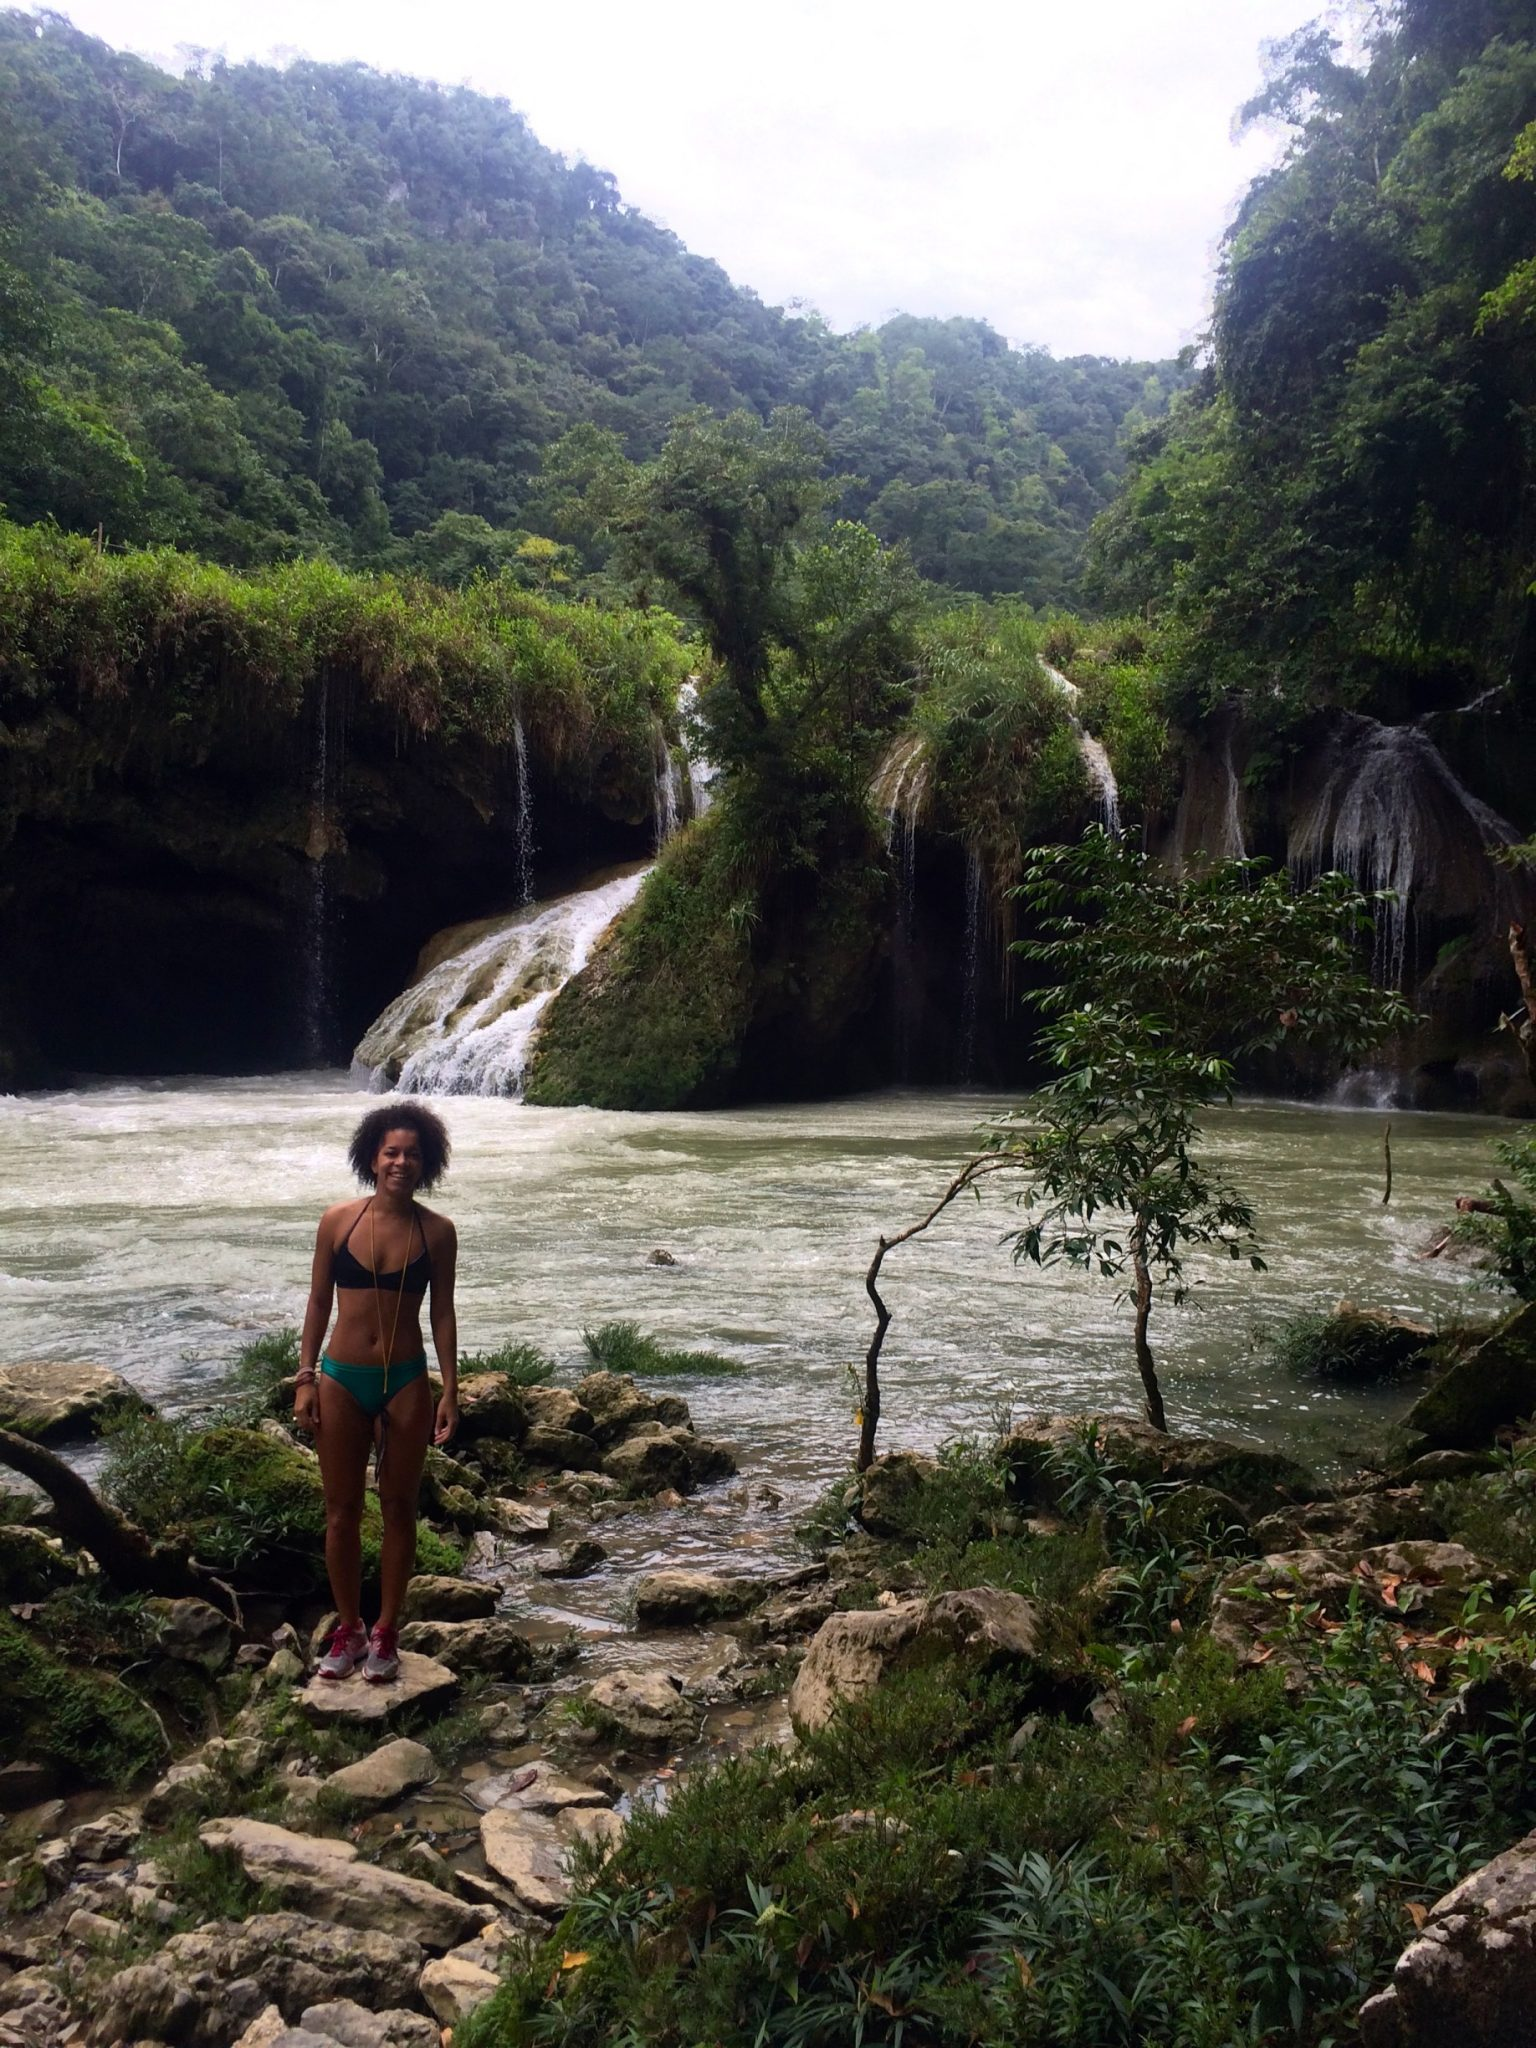 A Day Visiting Semuc Champey